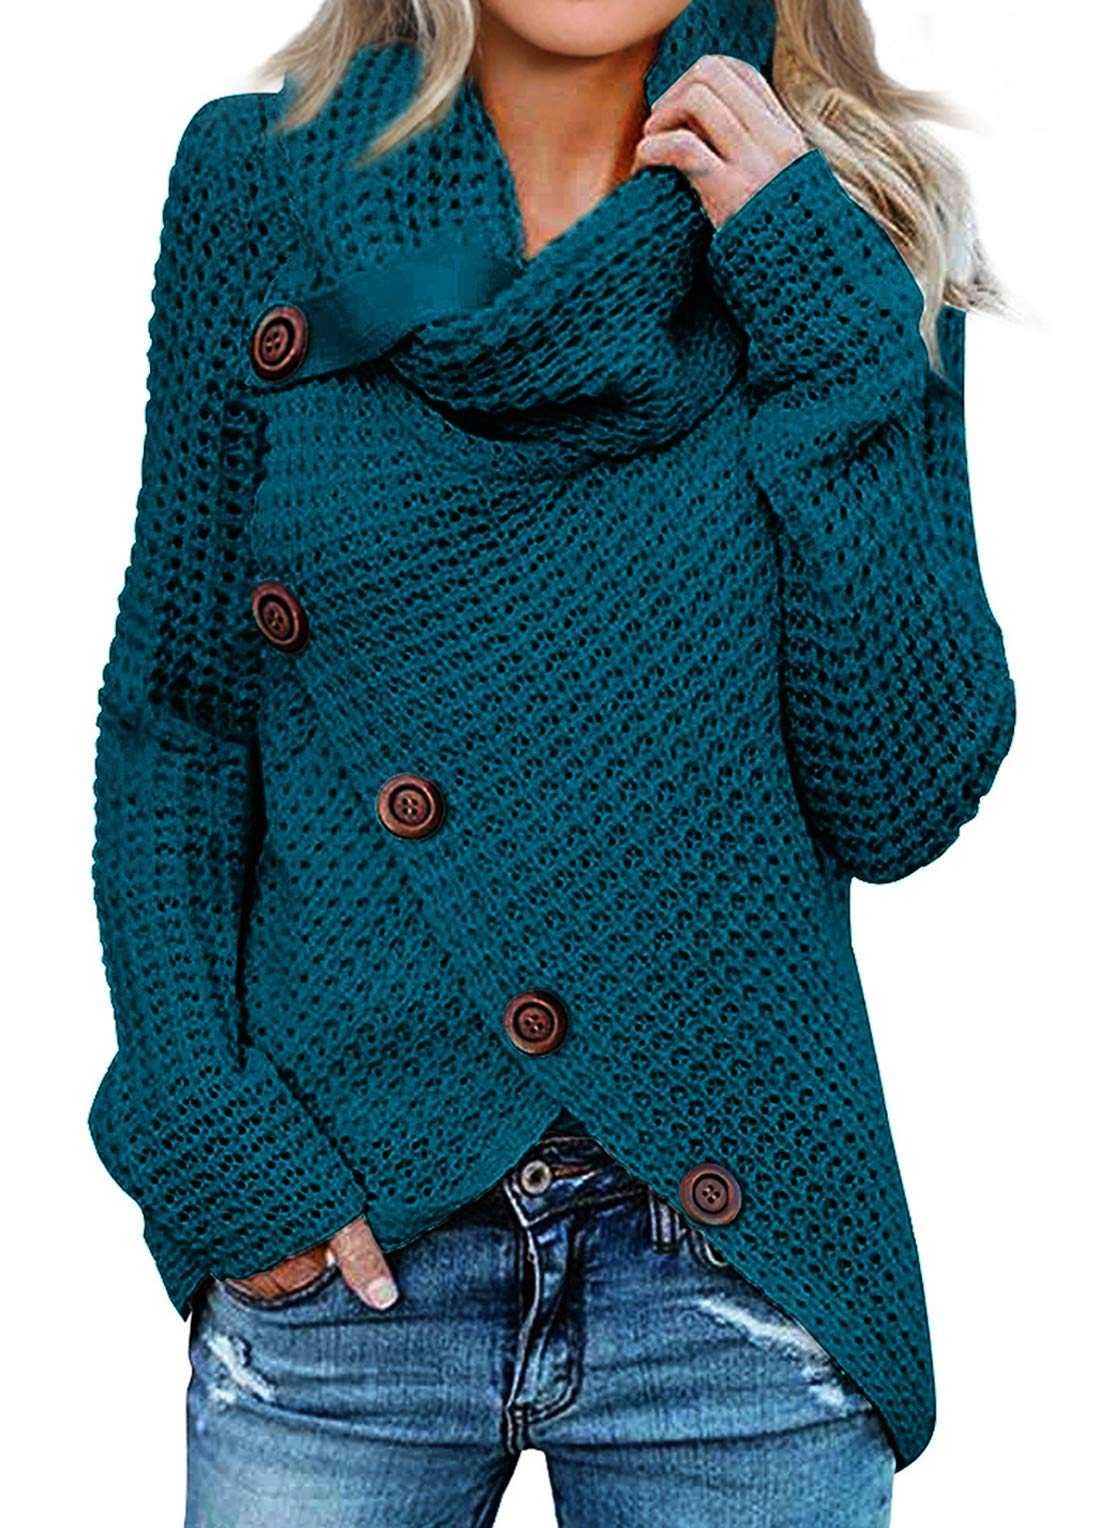 Sweater Dress - Women Open Front Long Sleeve Chunky Knit Cardigan Sweaters Loose Outwear Coat S-Xxl